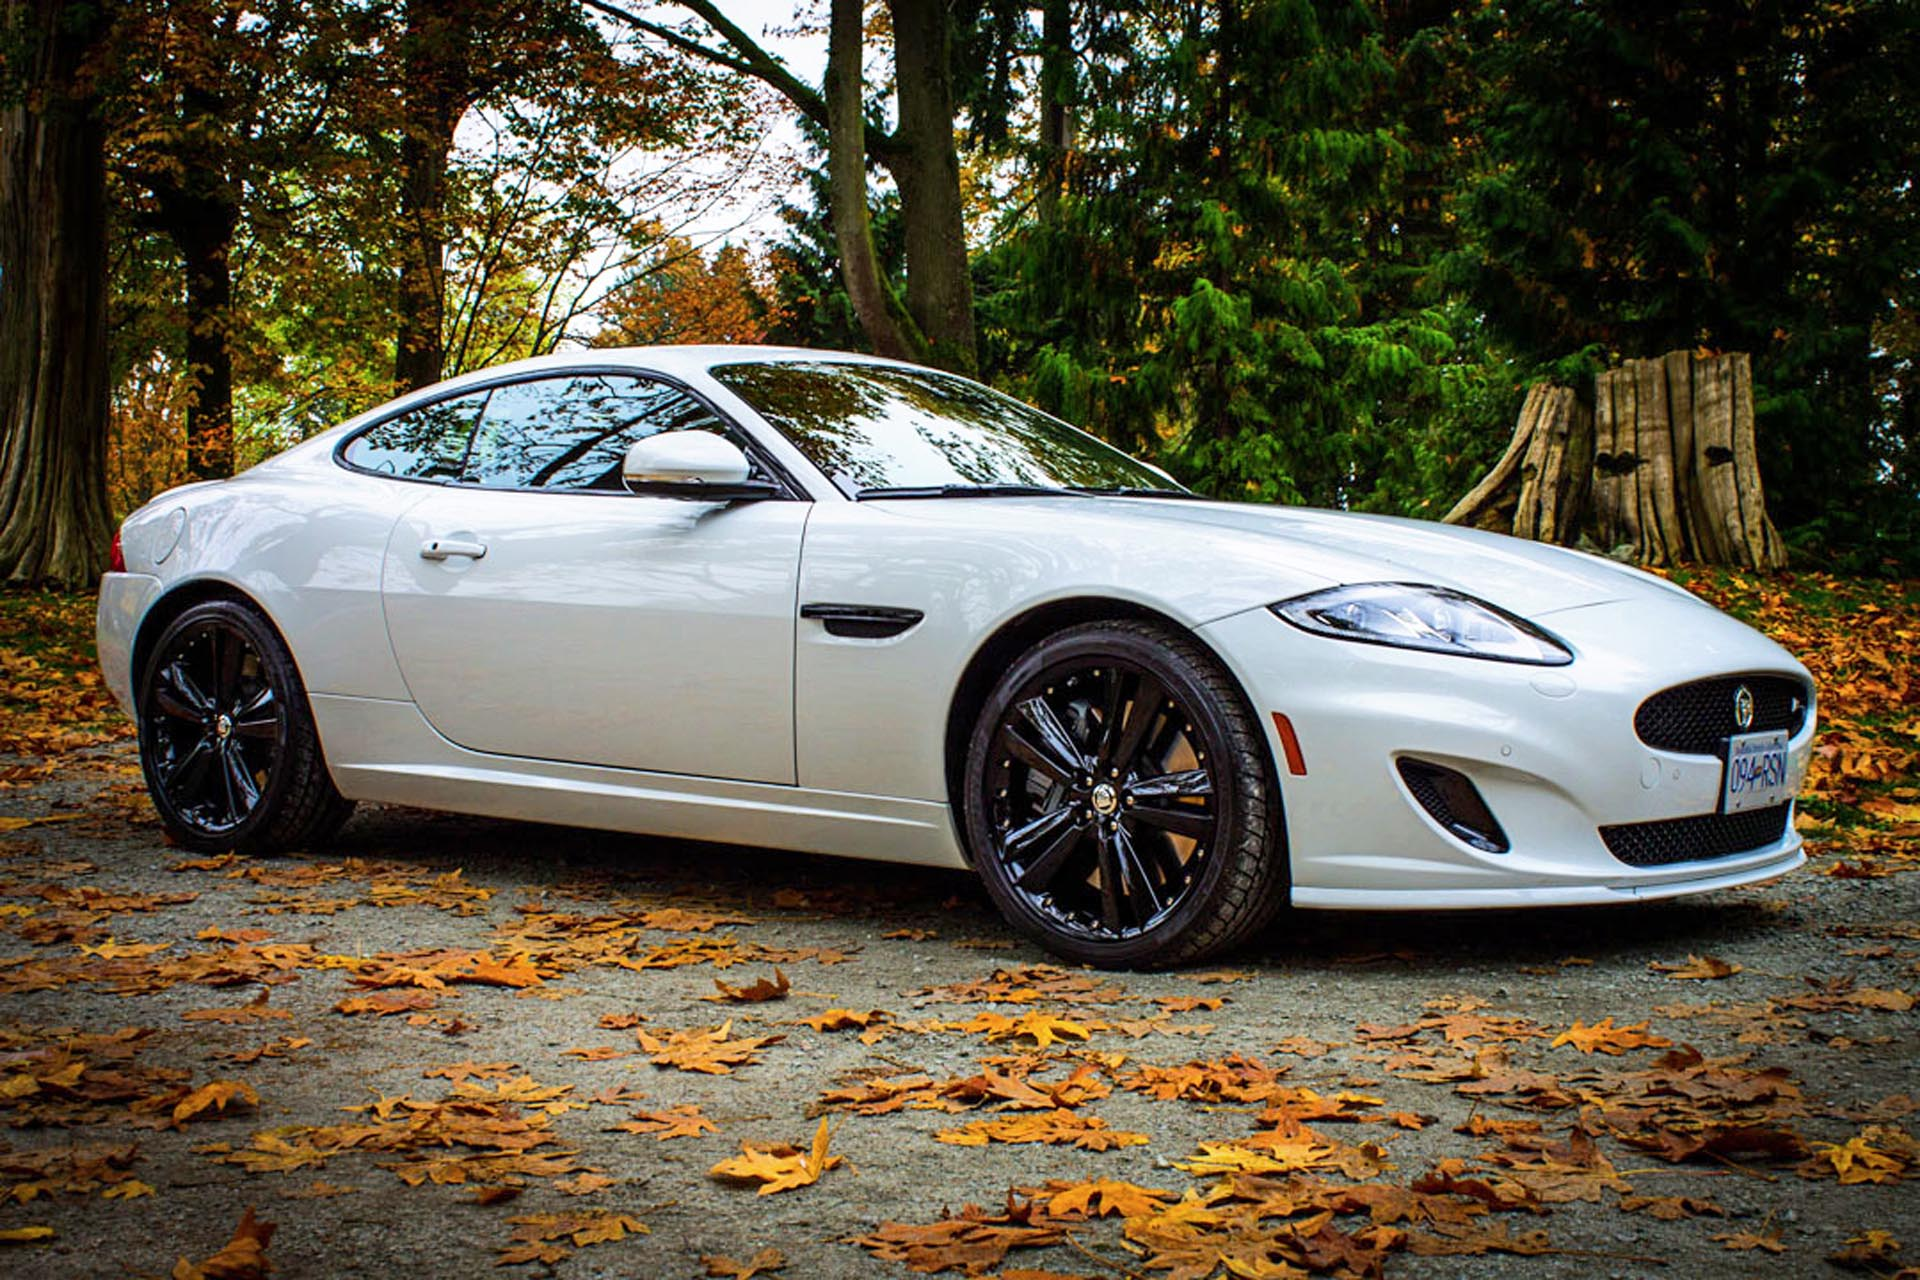 Used Lexus Convertible >> Used Vehicle Review: Jaguar XK and XKR, 2007-2014 - Autos.ca